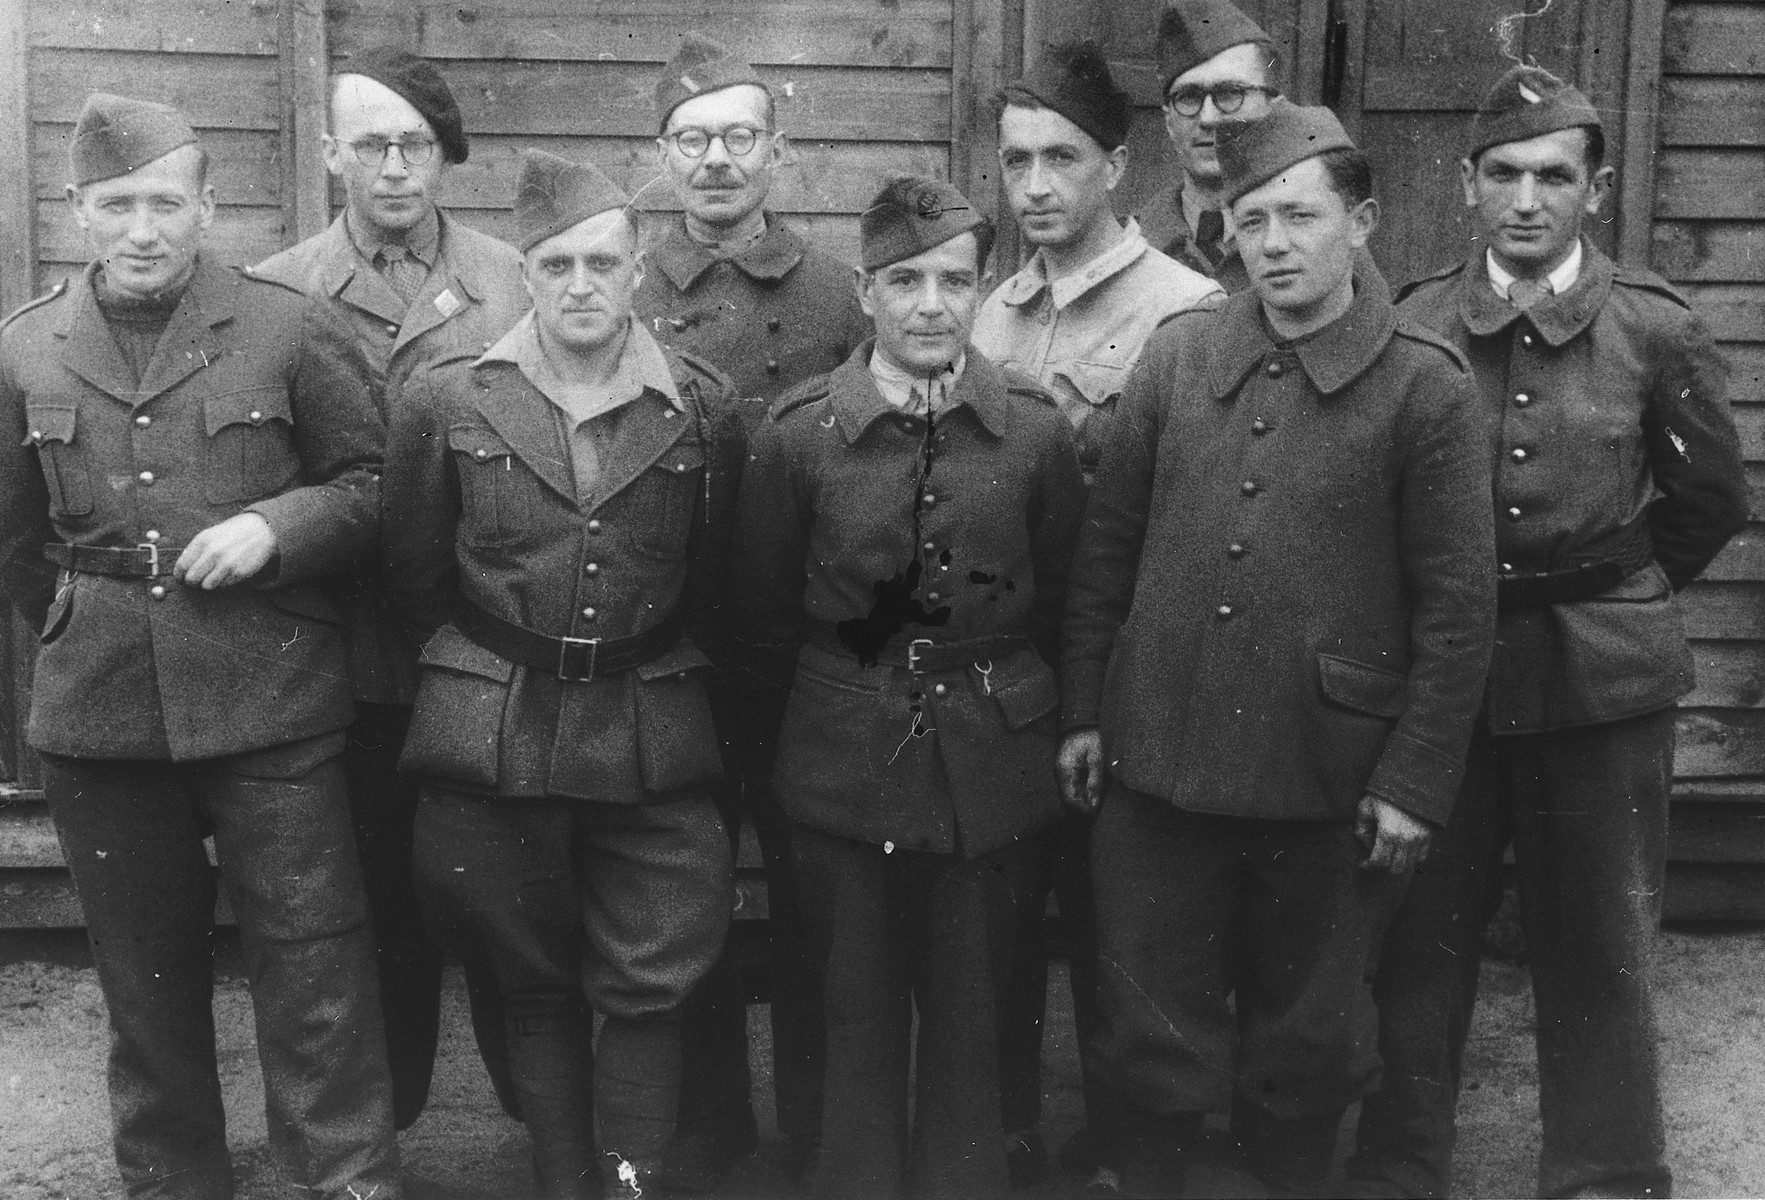 Group portrait of French prisoners-of-war in Stalag X B.  Among them is Pierre Babut who later married Helene Finkielsztajn.